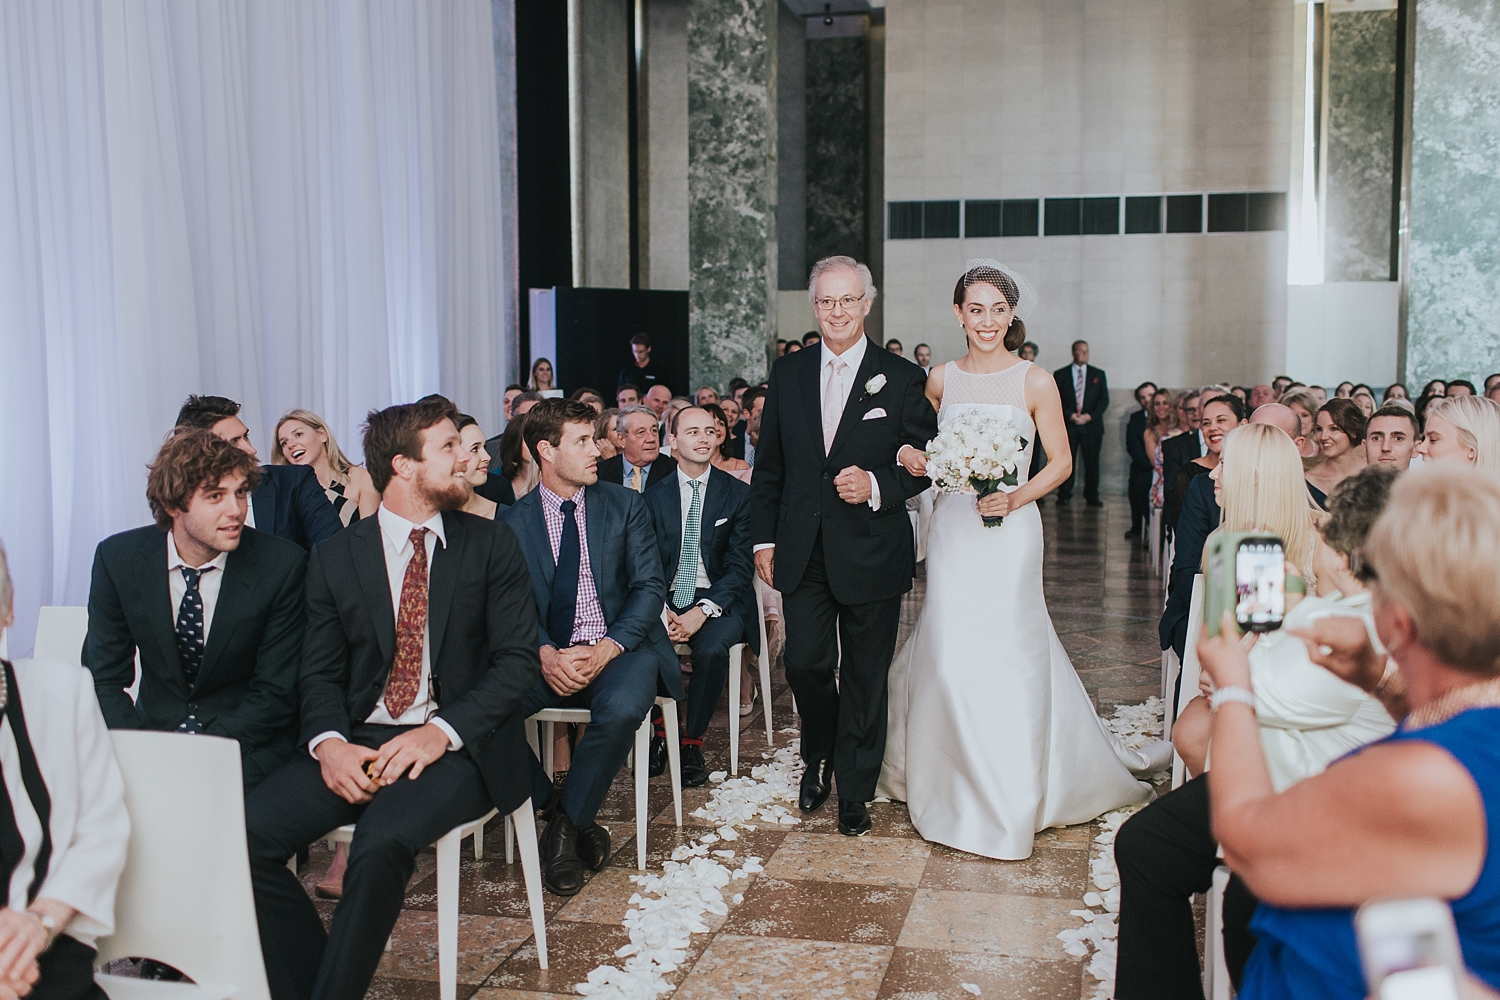 sydney bride walking the aisle at the mca